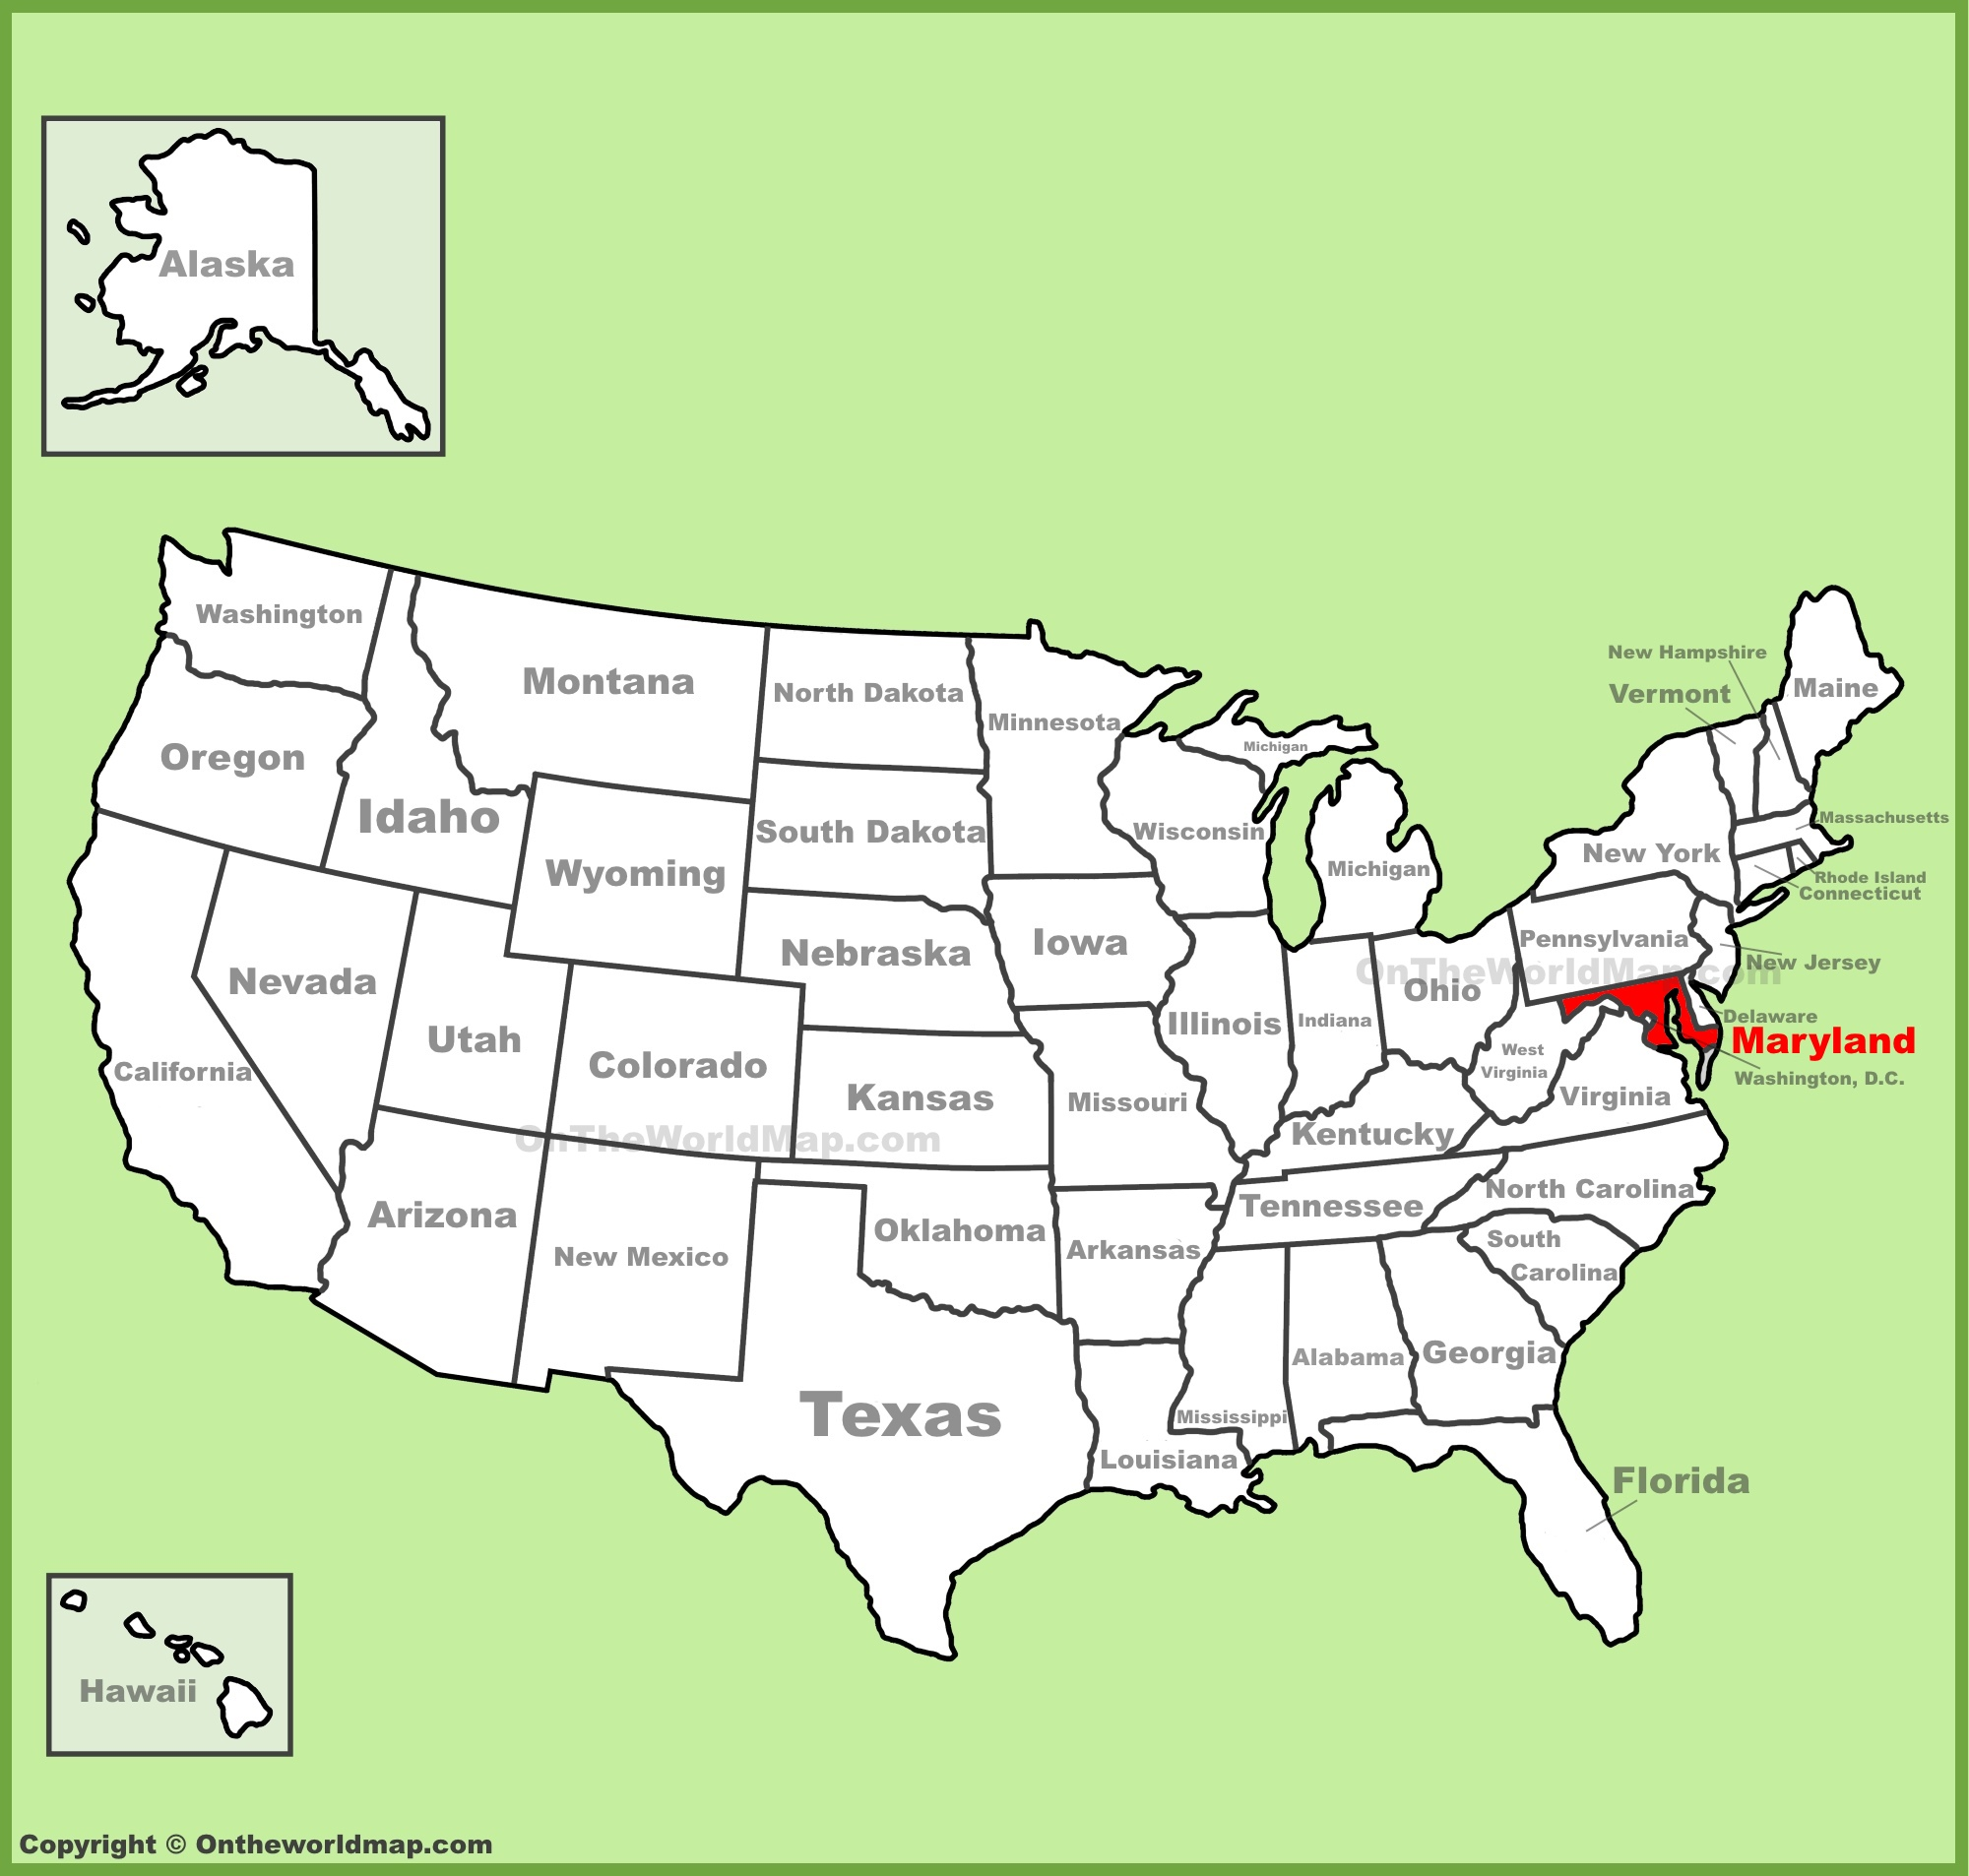 Maryland On A Map Maryland location on the U.S. Map